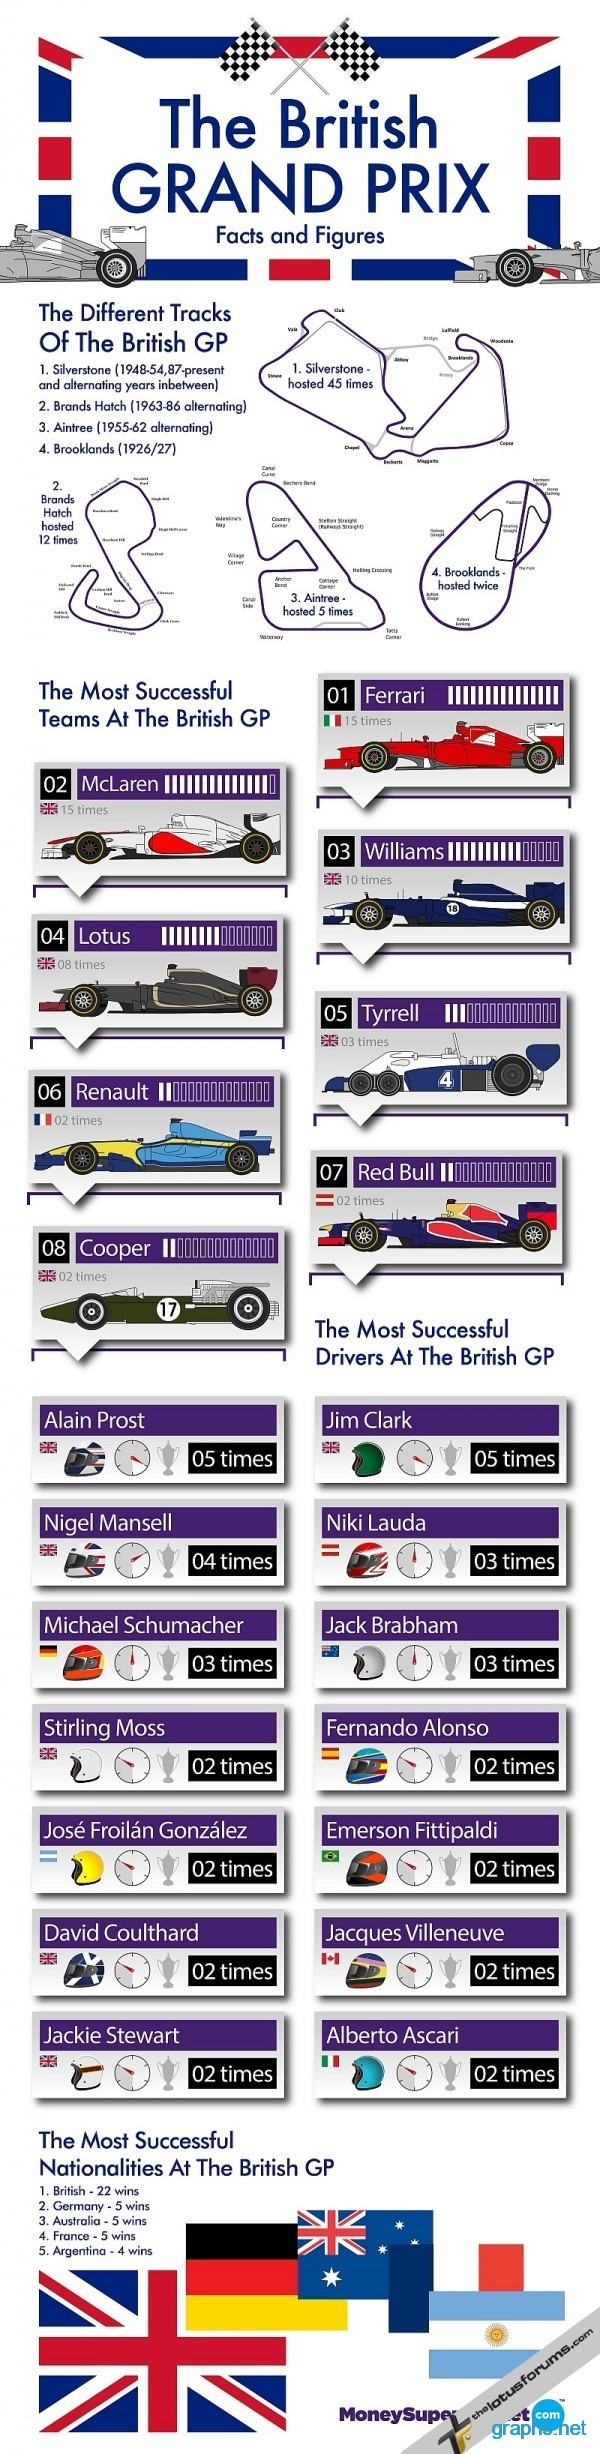 british grand prix facts